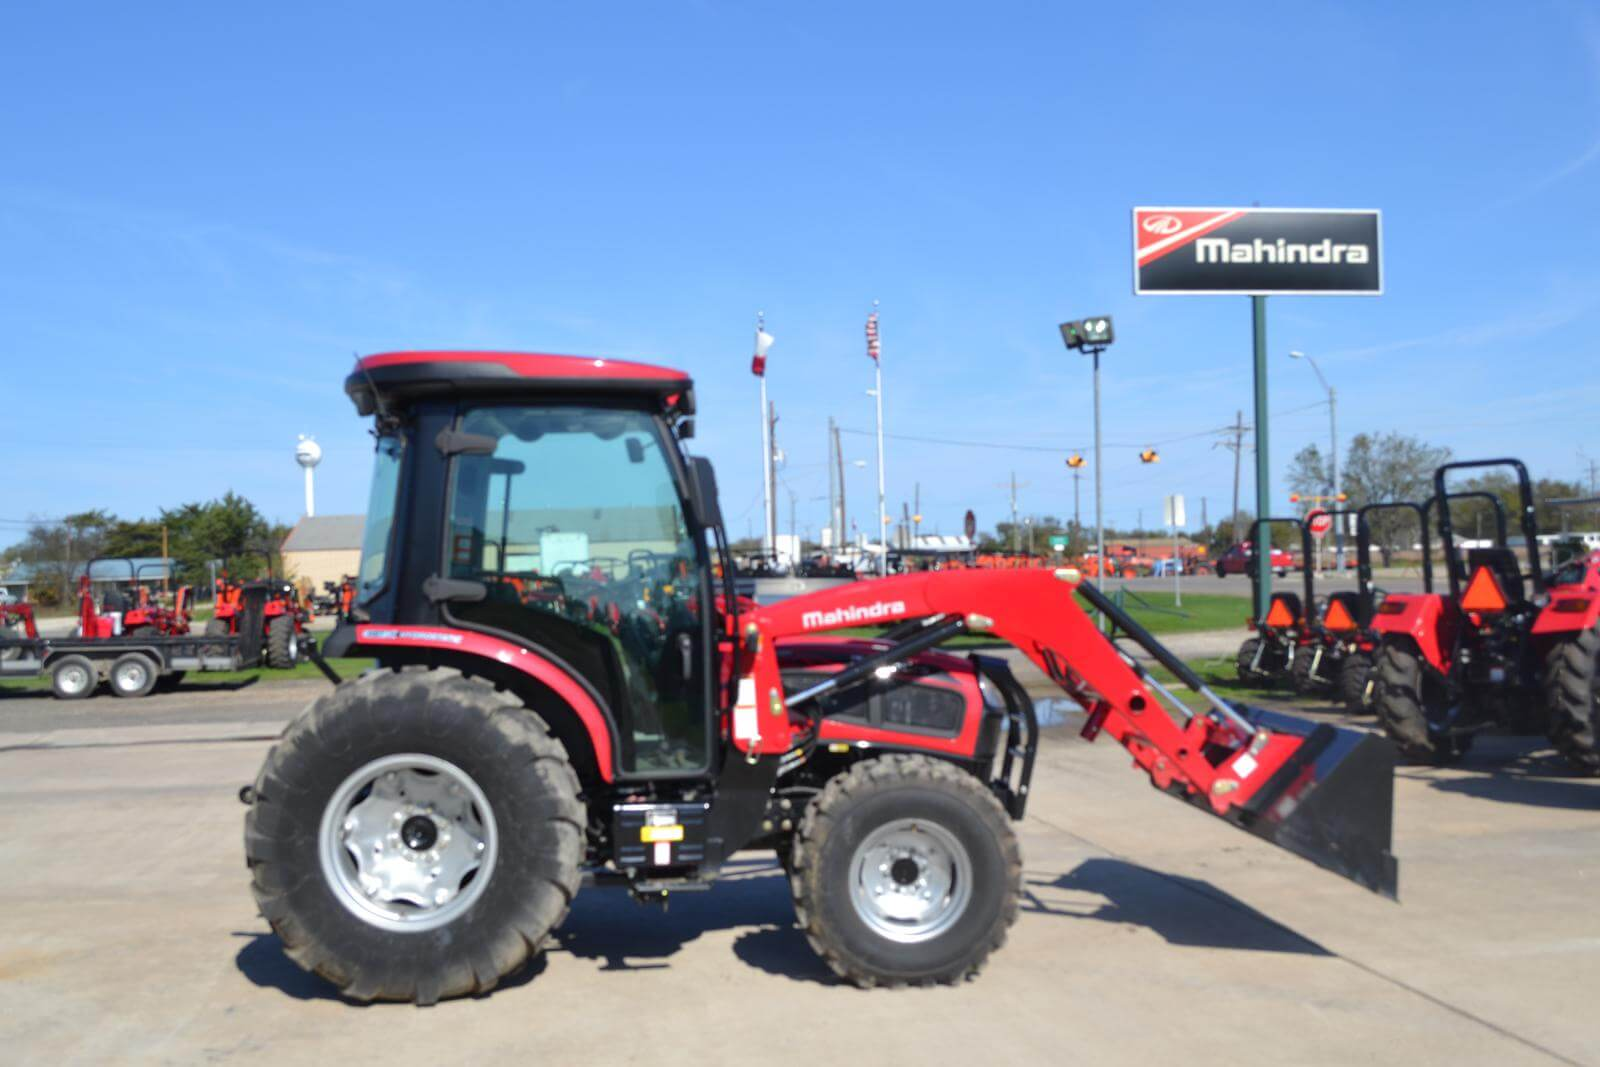 Mahindra 3550 4WD HST Cab tractor